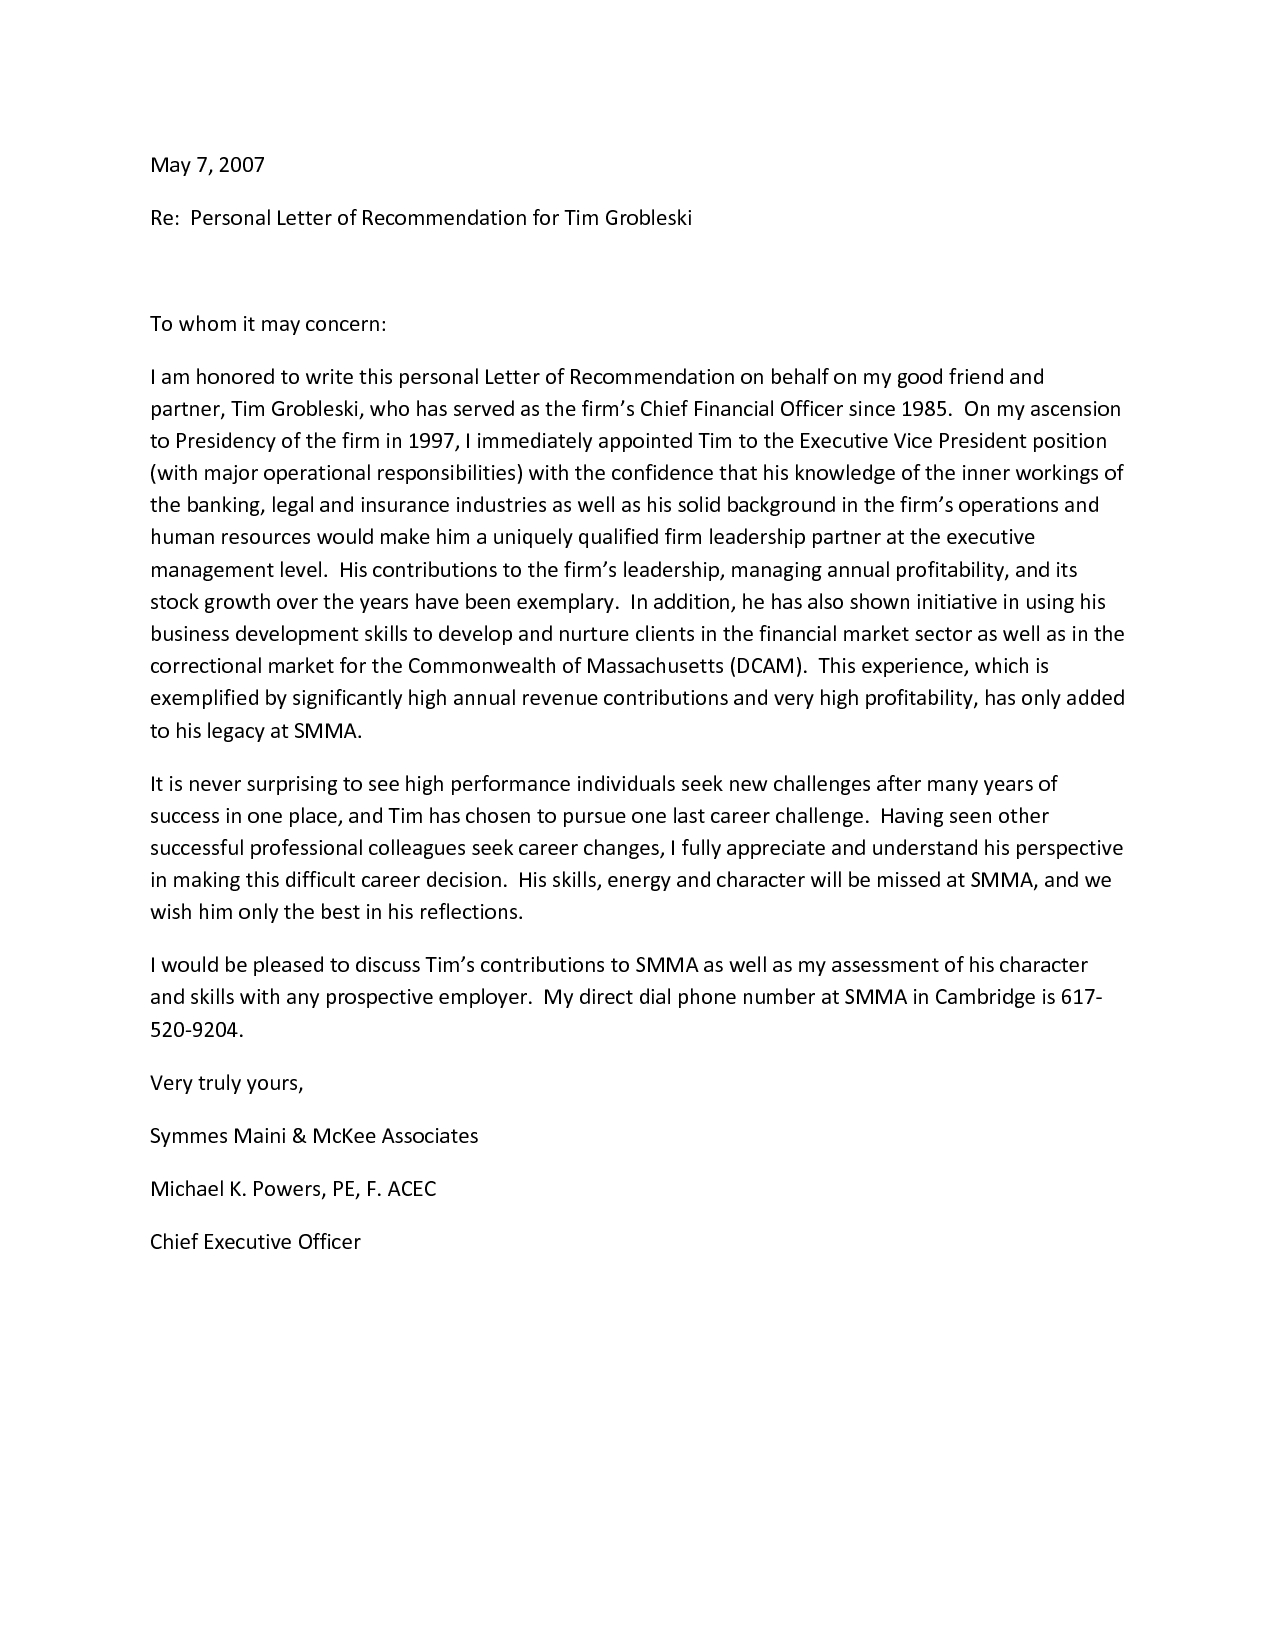 Letter Of Recommendation for A Friend Template - Simple Reference Letter for A Friend Letter format formal